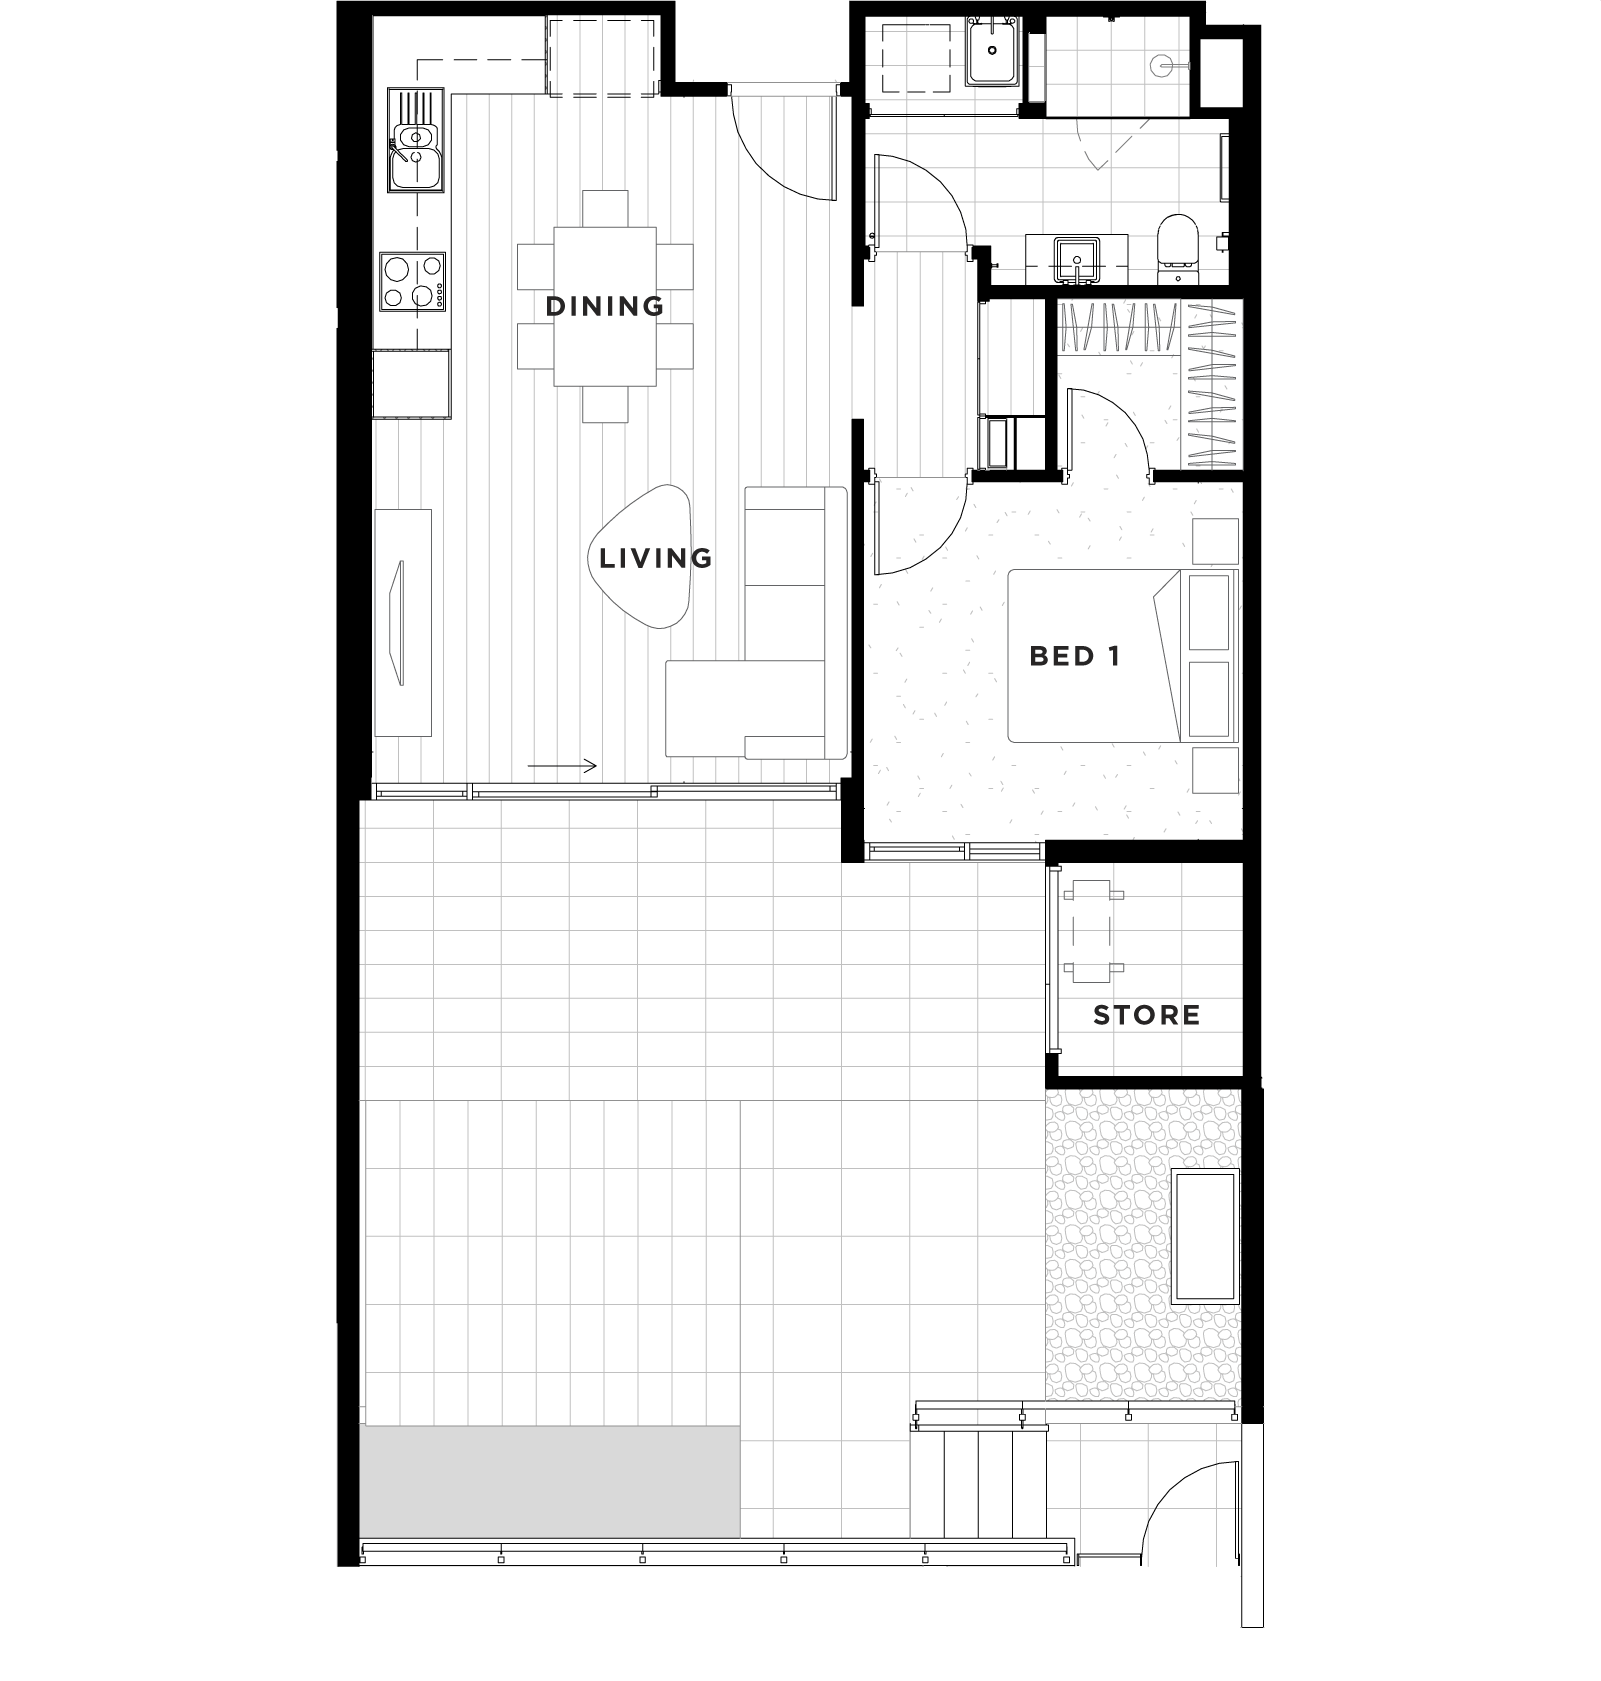 Apartment 06 Floorplan